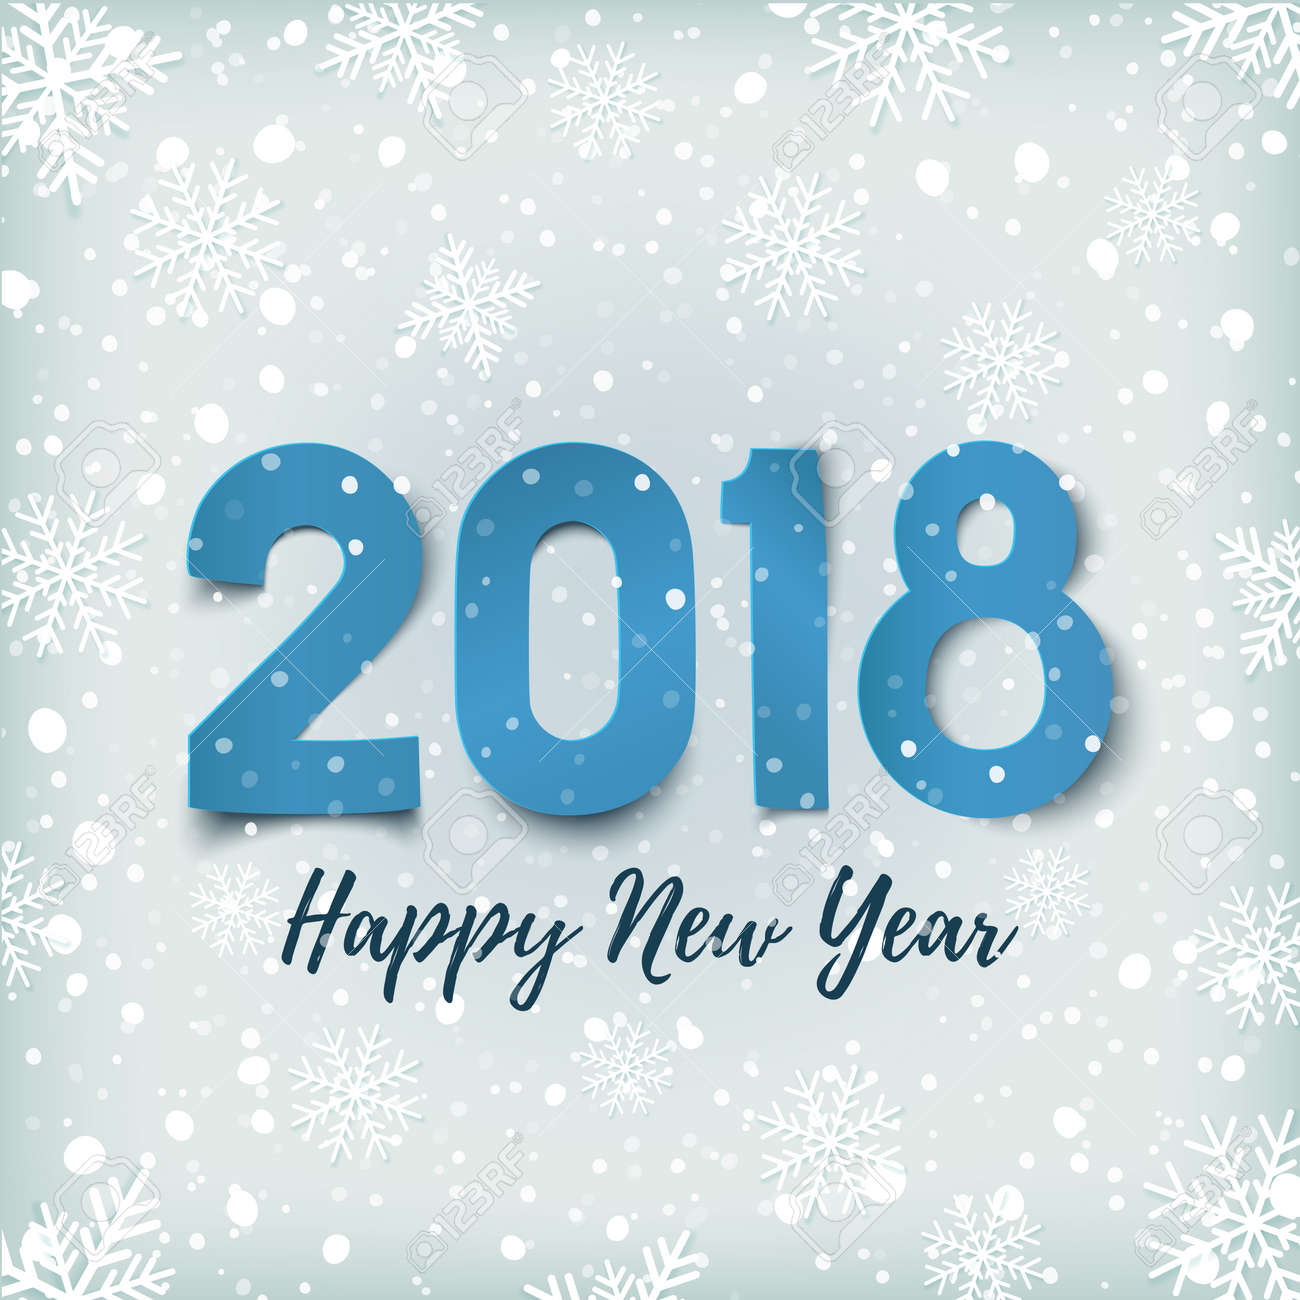 happy new year 2018 blue winter background with snow and snowflakes greeting card